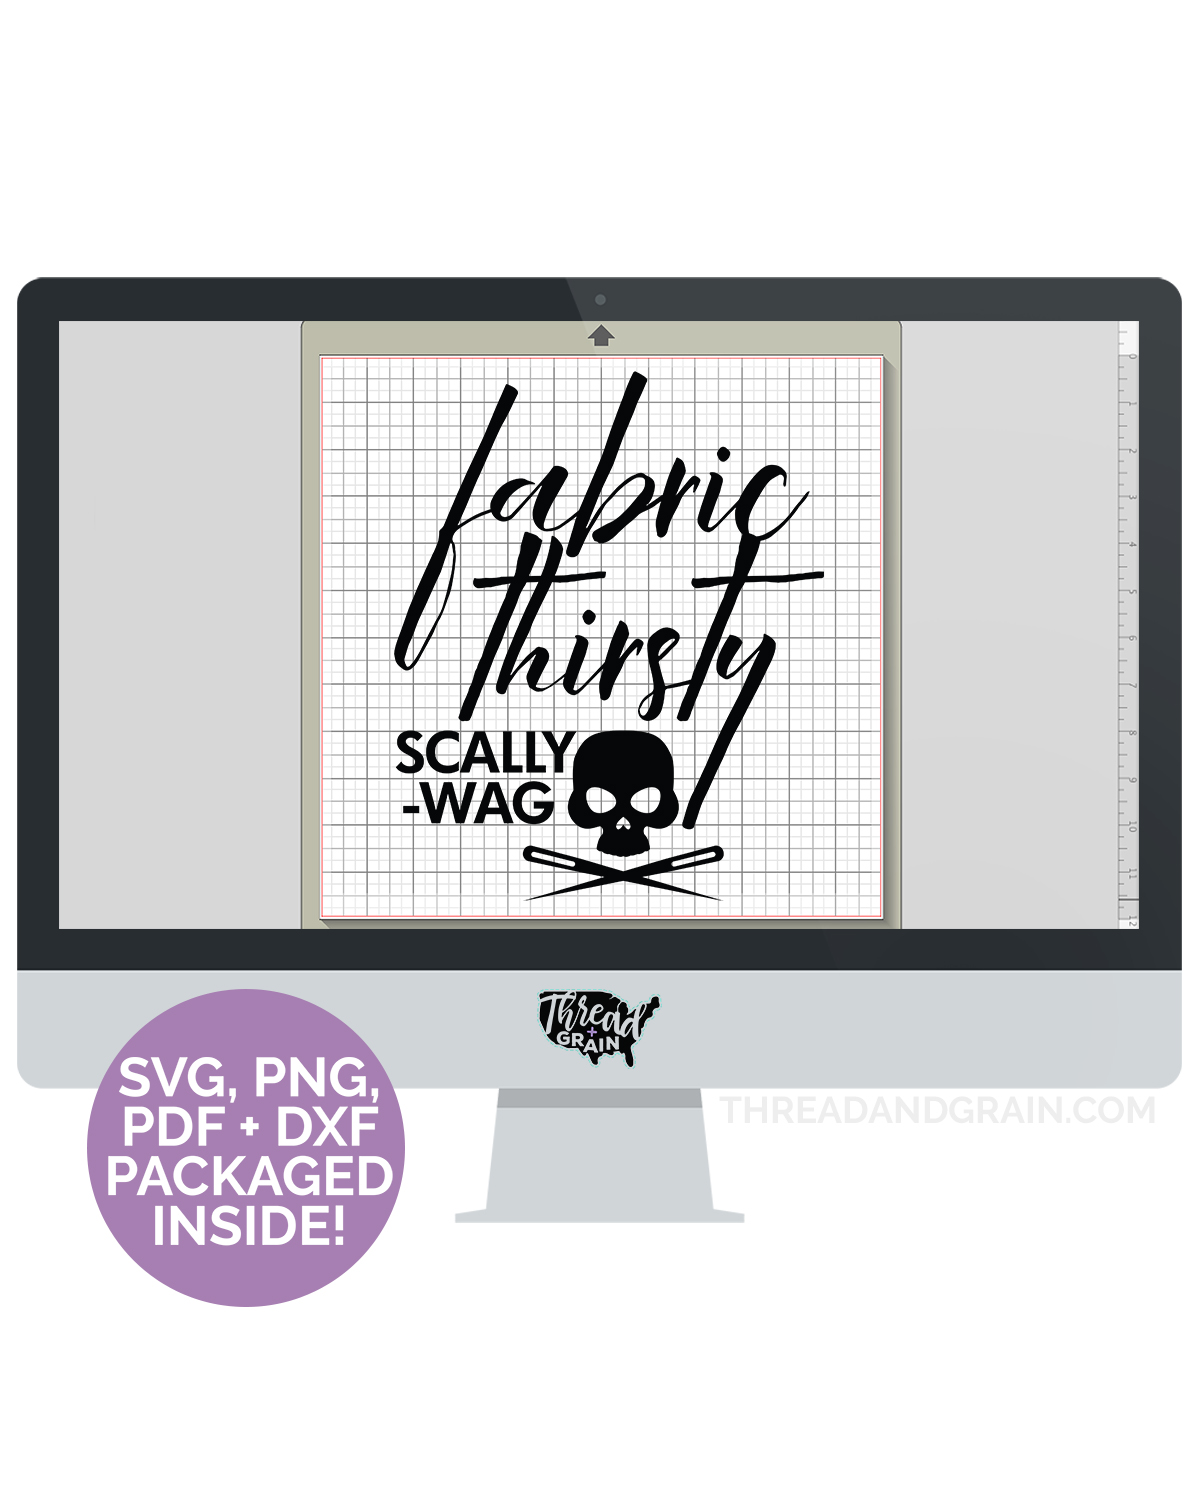 Fabric Thirsty Scallywag DIGITAL CUT FILE